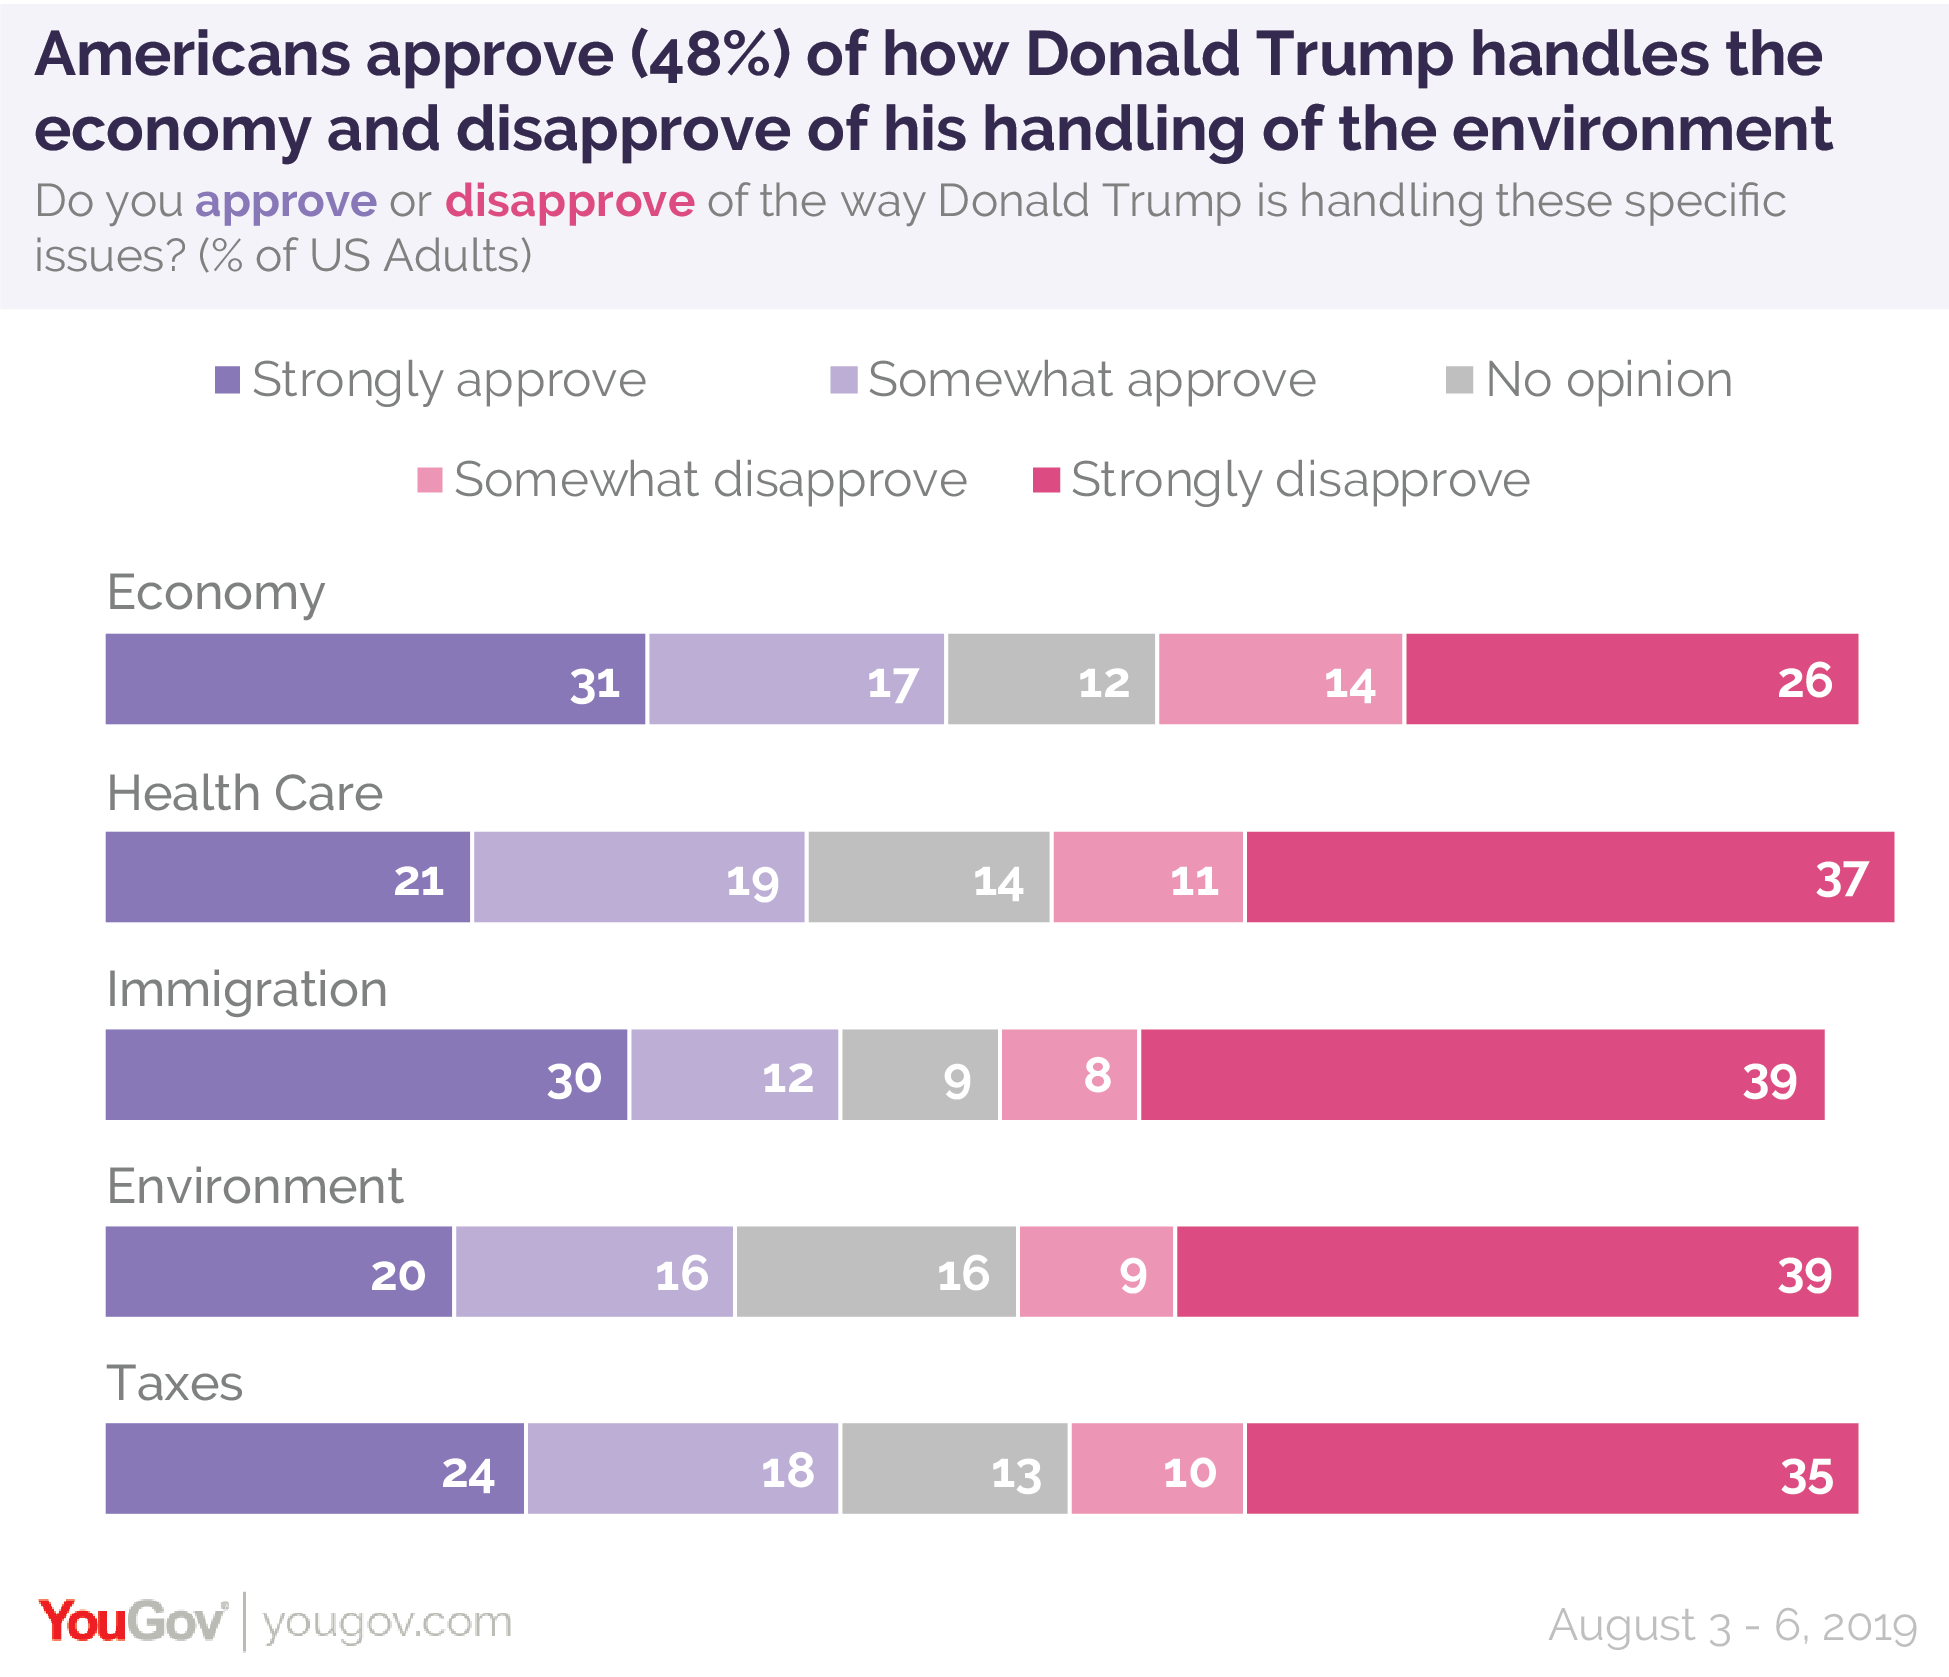 Americans approve of how Donald Trump handles the economy but disapproves of his handling of the environment